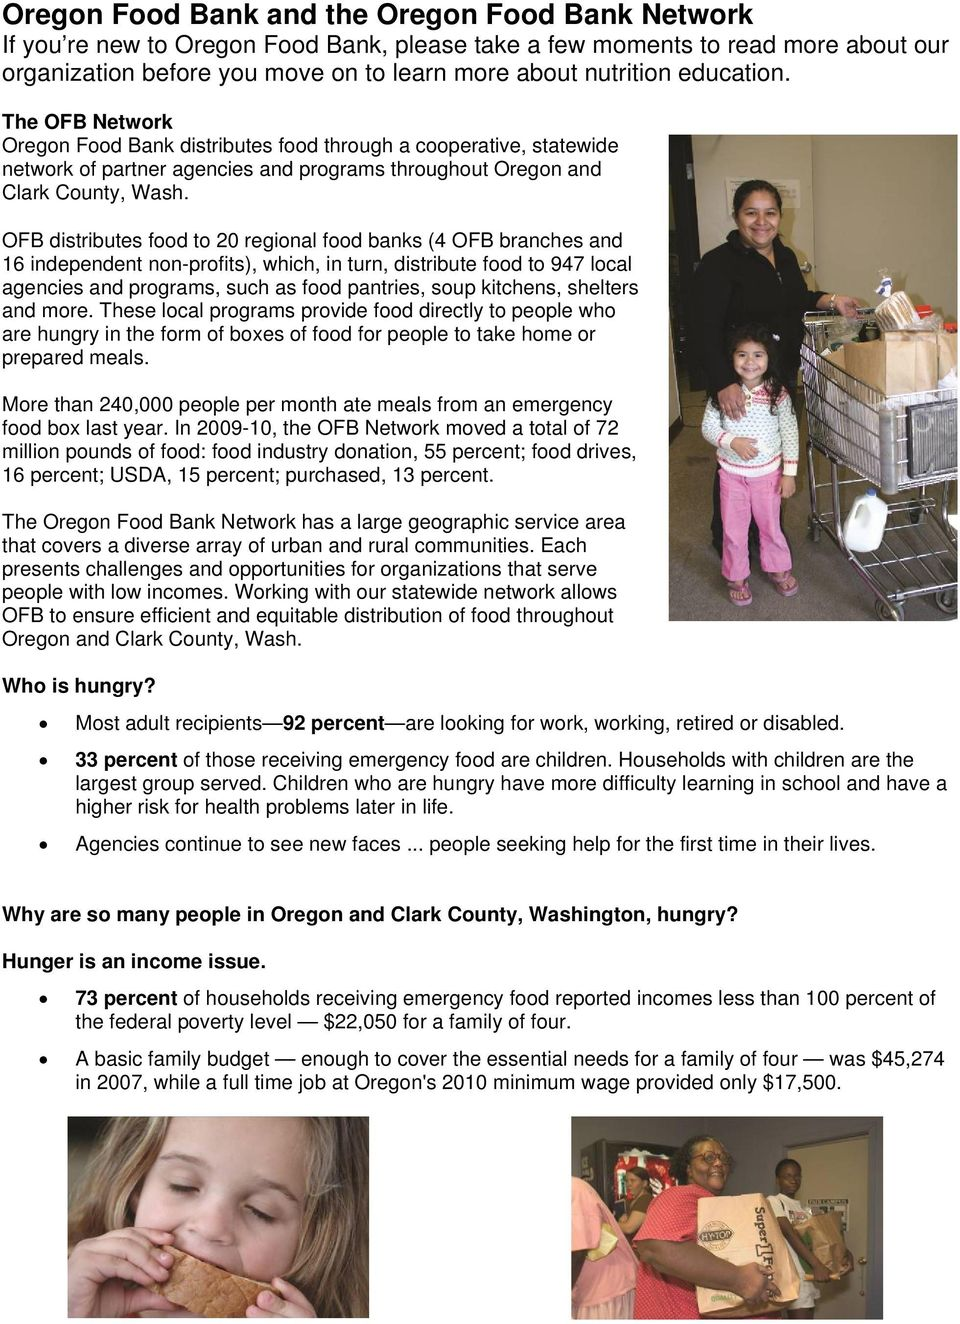 OFB distributes food to 20 regional food banks (4 OFB branches and 16 independent non-profits), which, in turn, distribute food to 947 local agencies and programs, such as food pantries, soup